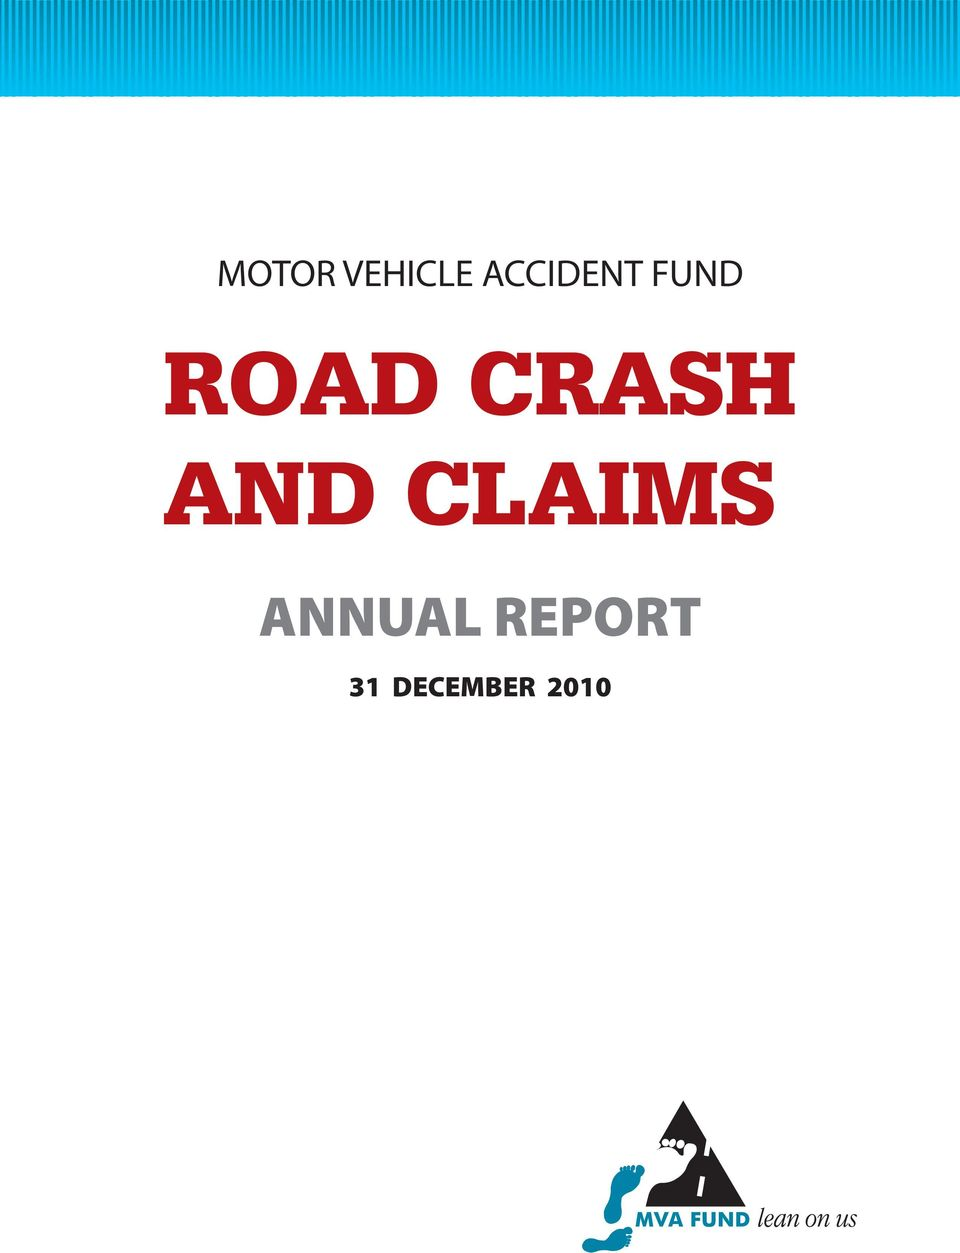 CRASH AND CLAIMS